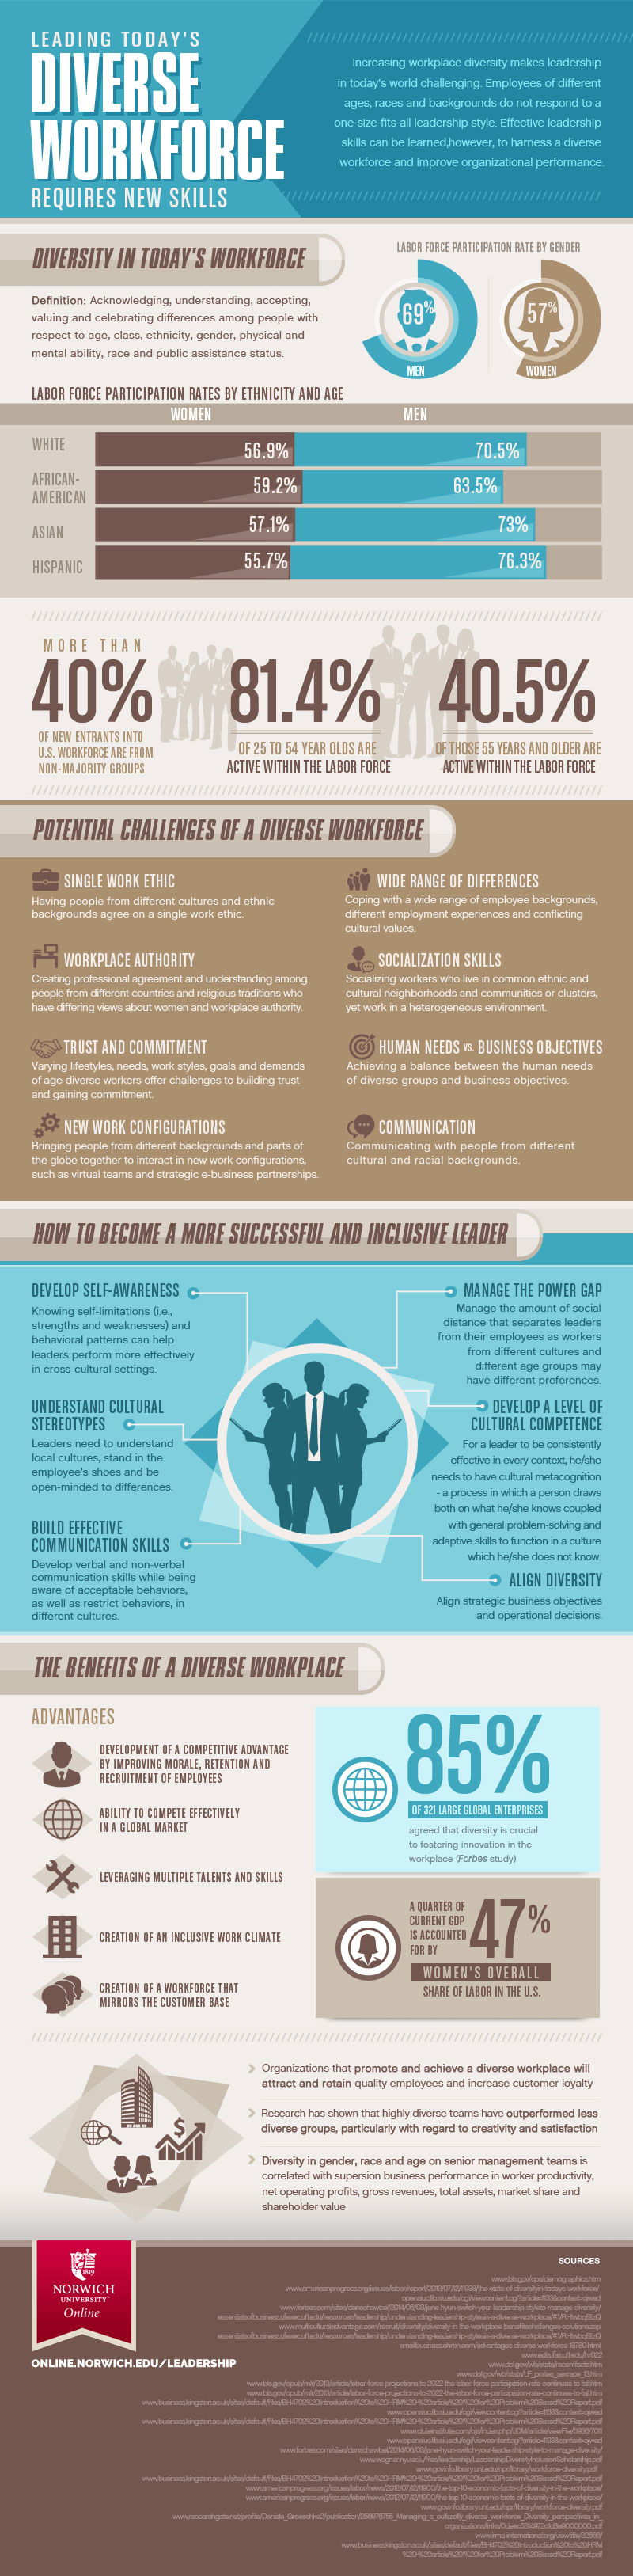 infographic on leaderhship in todays diverse workforce